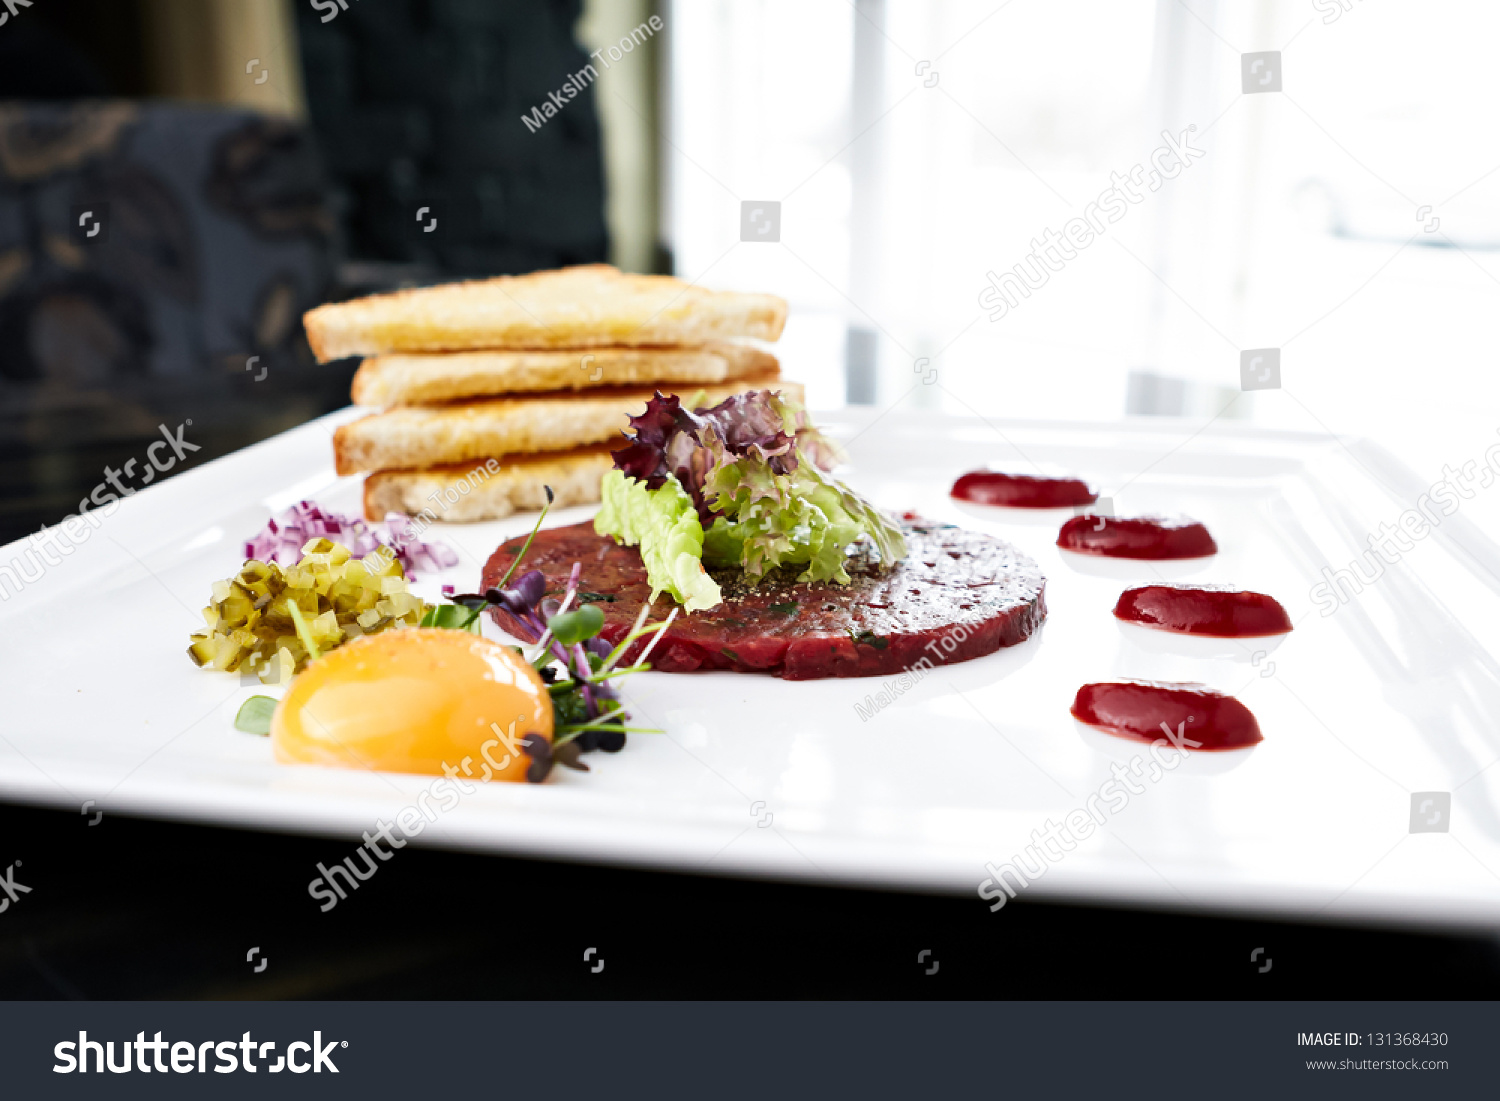 Classic Steak Tartare With Raw Egg And Croutons. Stock Photo 131368430 ...